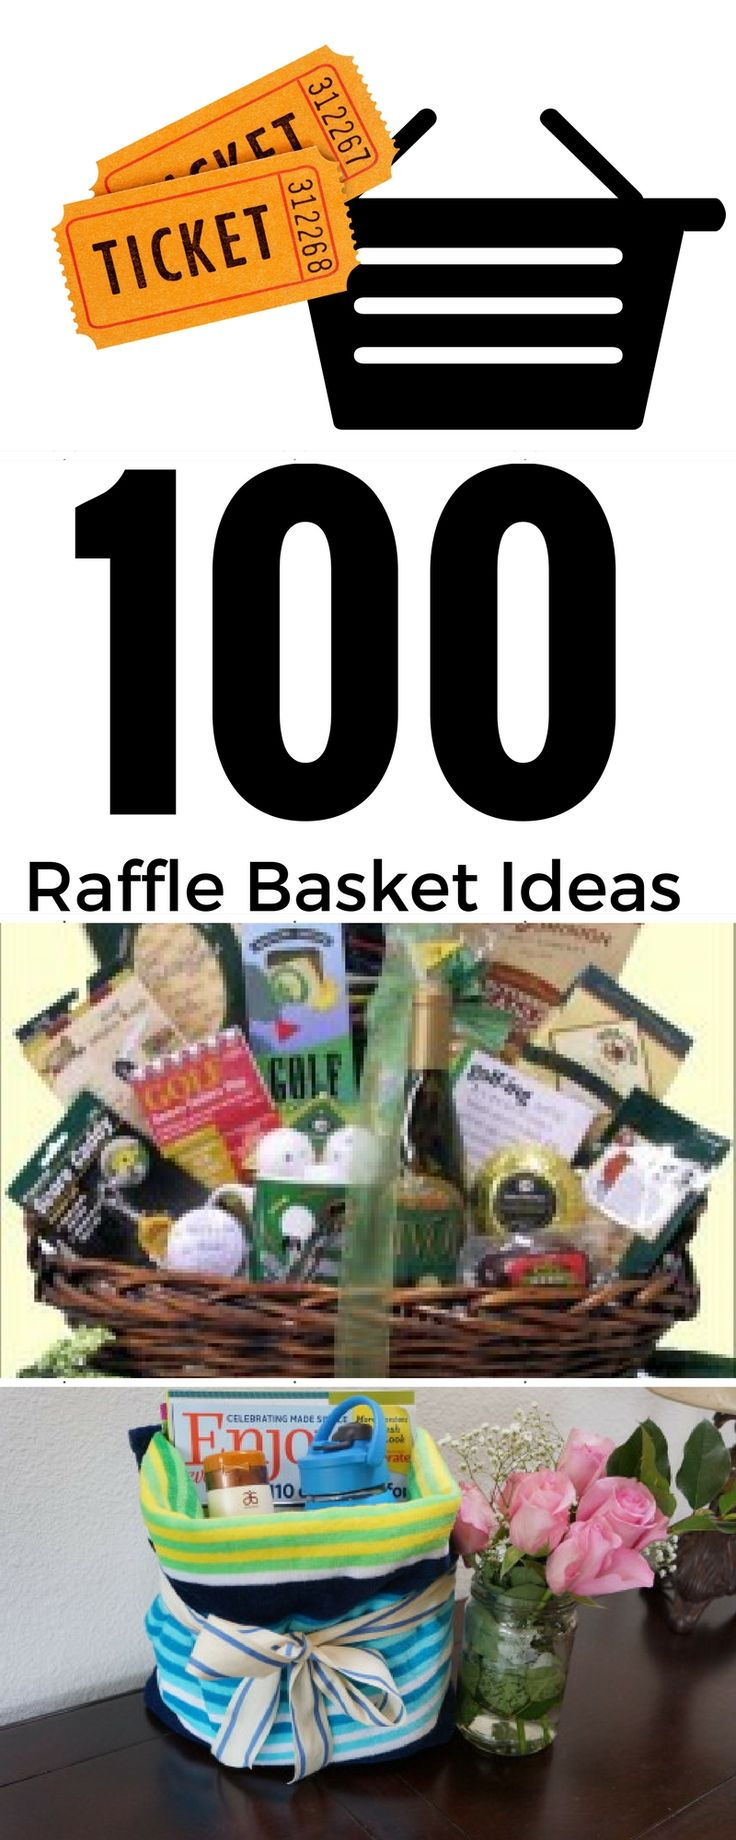 100 Fall Festival Raffle Basket Ideas - The Auction Basket List …